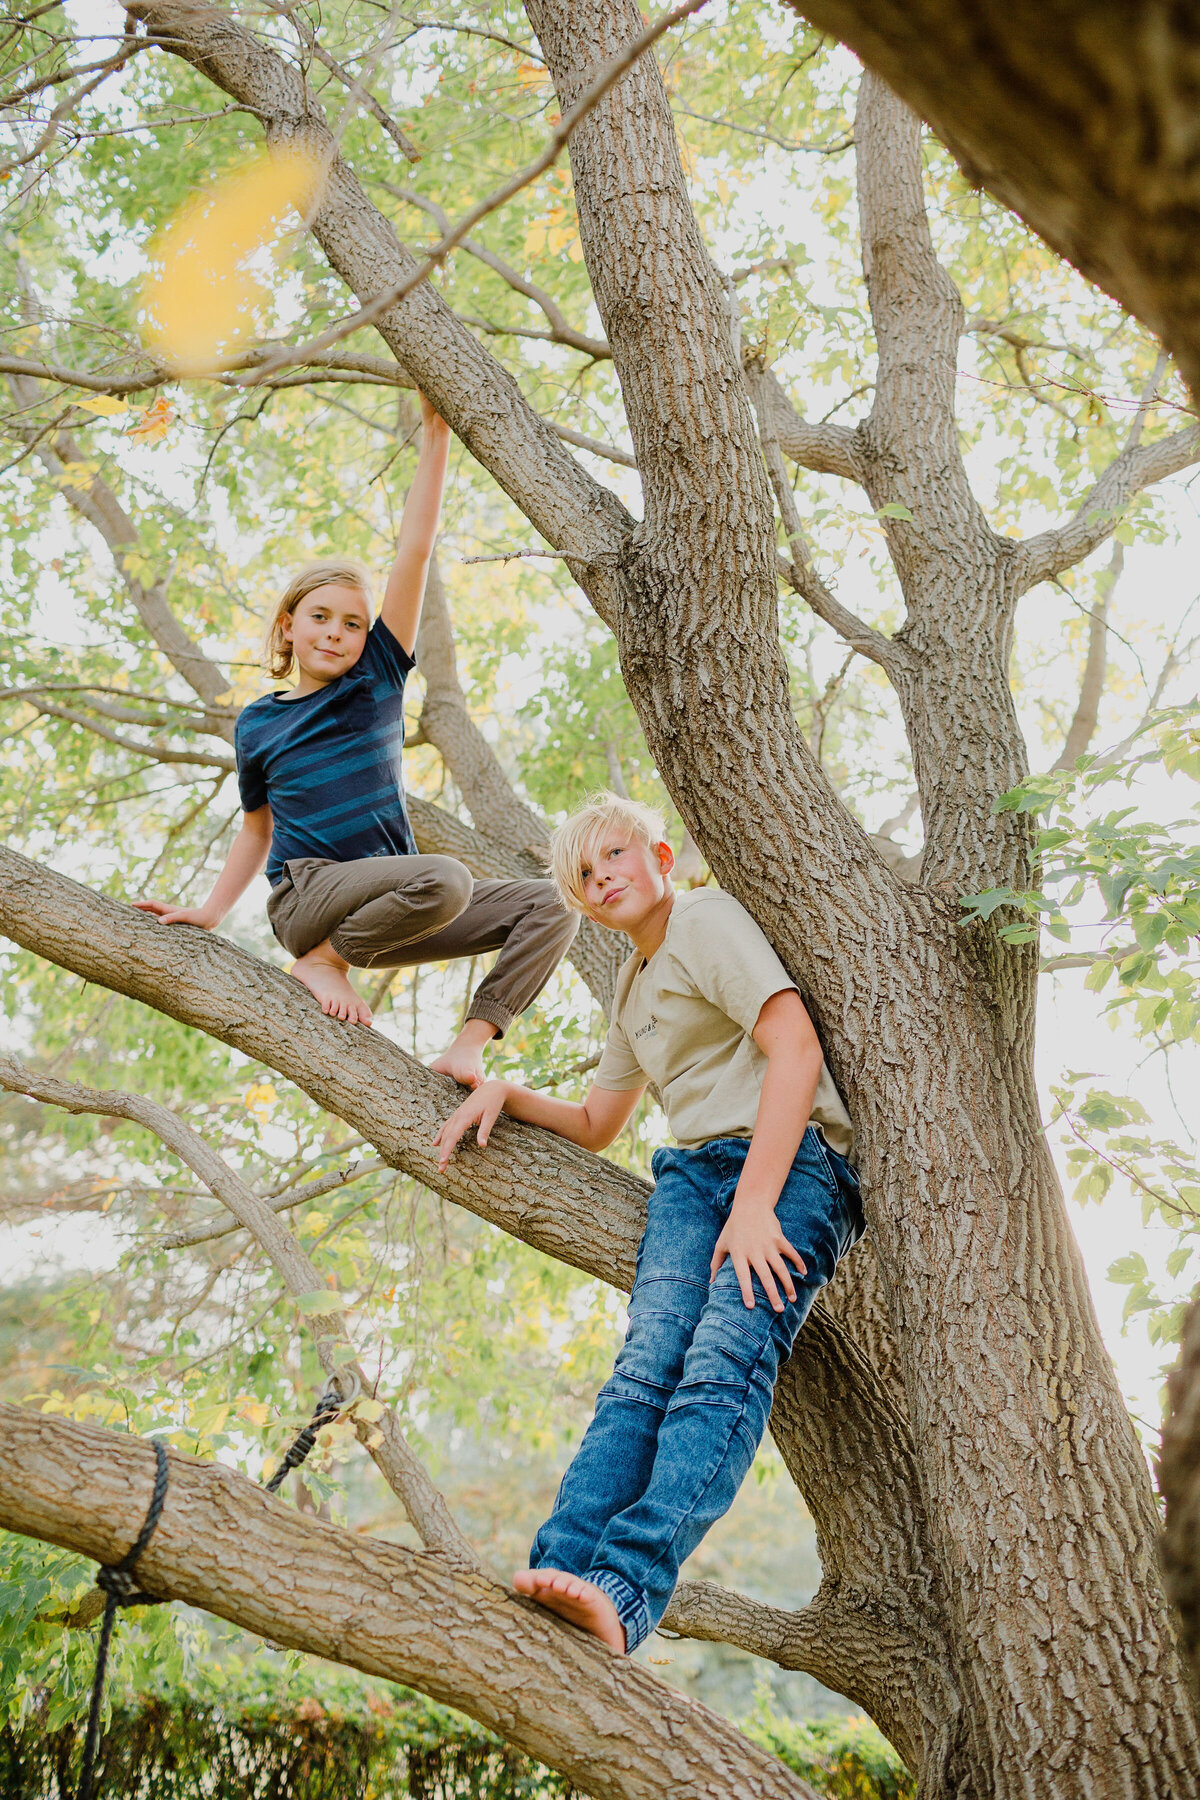 Climbing trees barefoot and wild